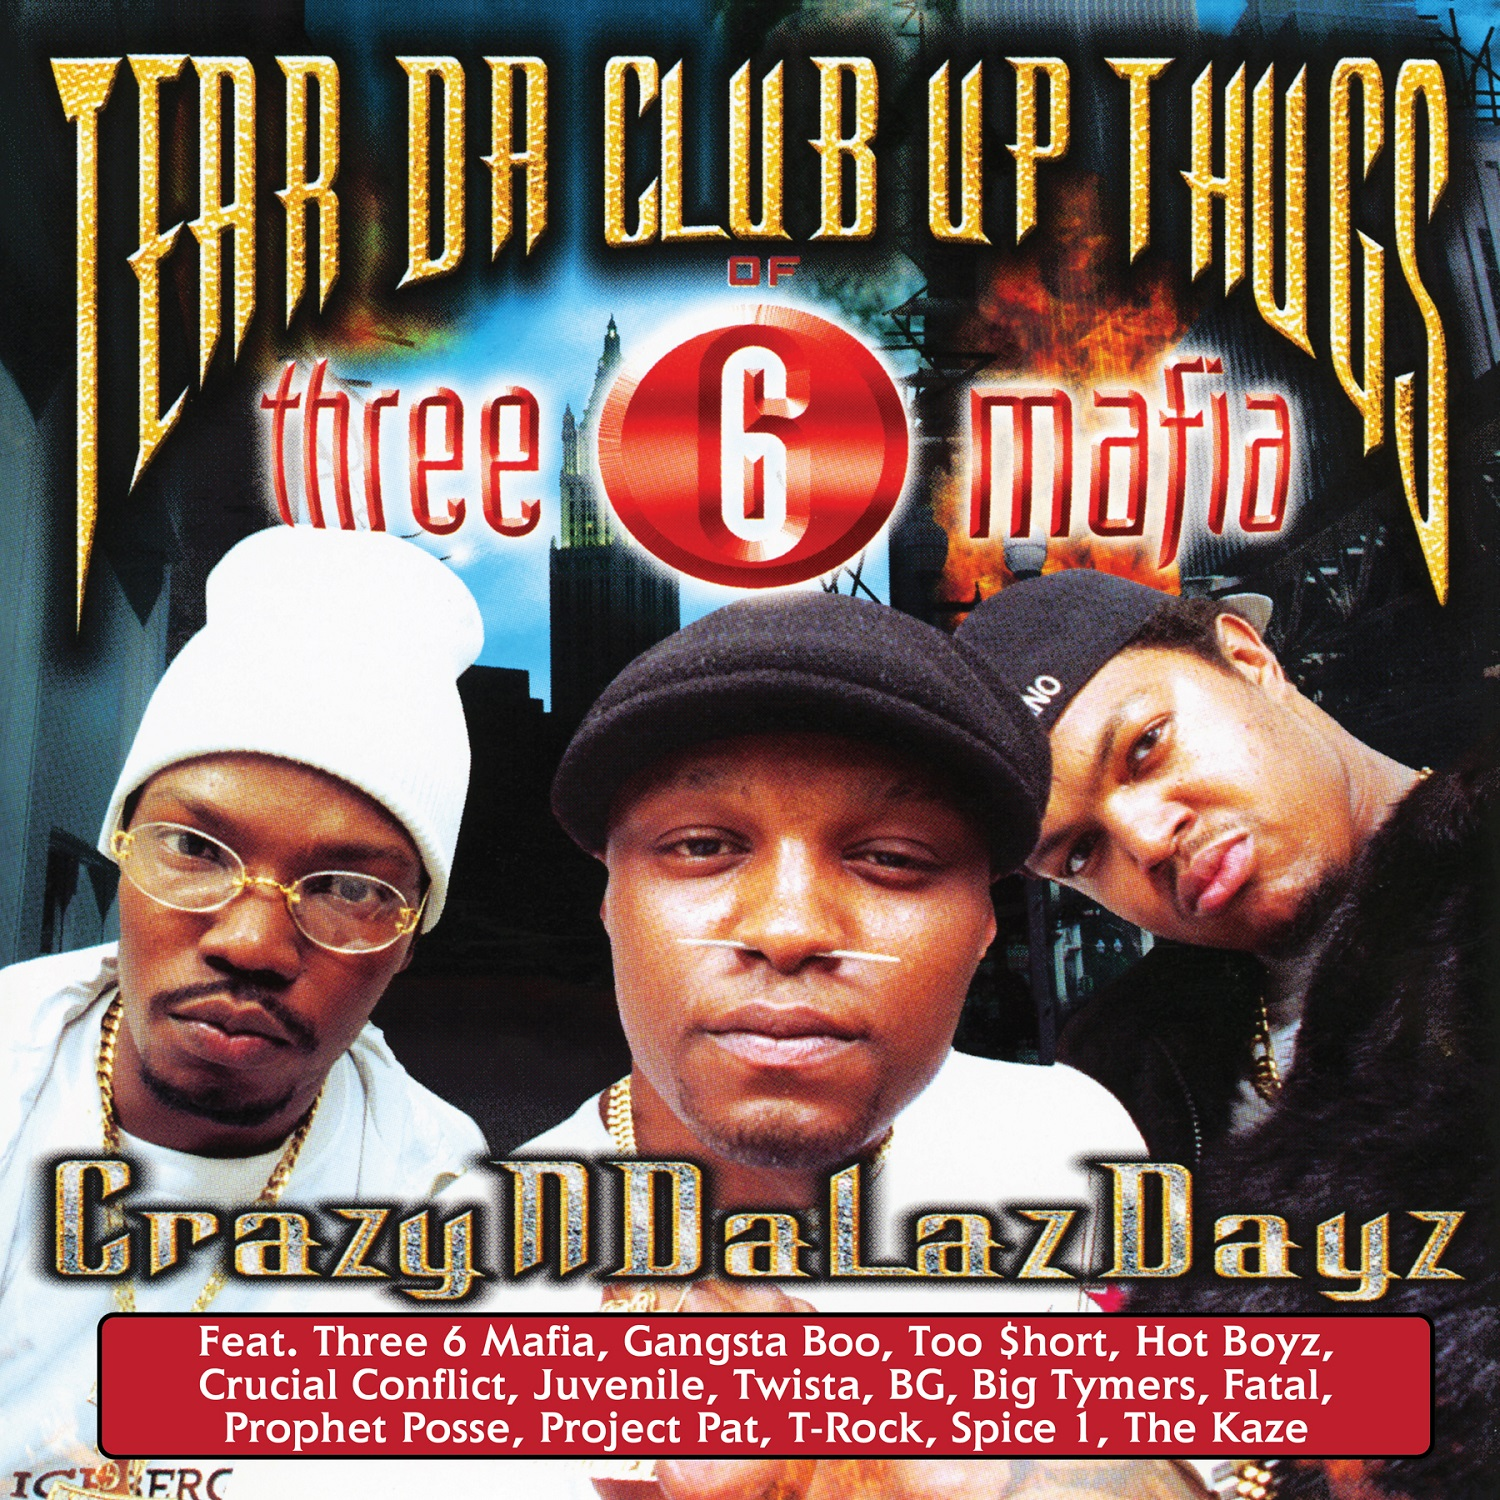 Tear Da Club Up Thugs of Three 6 Mafia - CrazyNDaLazDayz [RSD Drops Oct 2020]